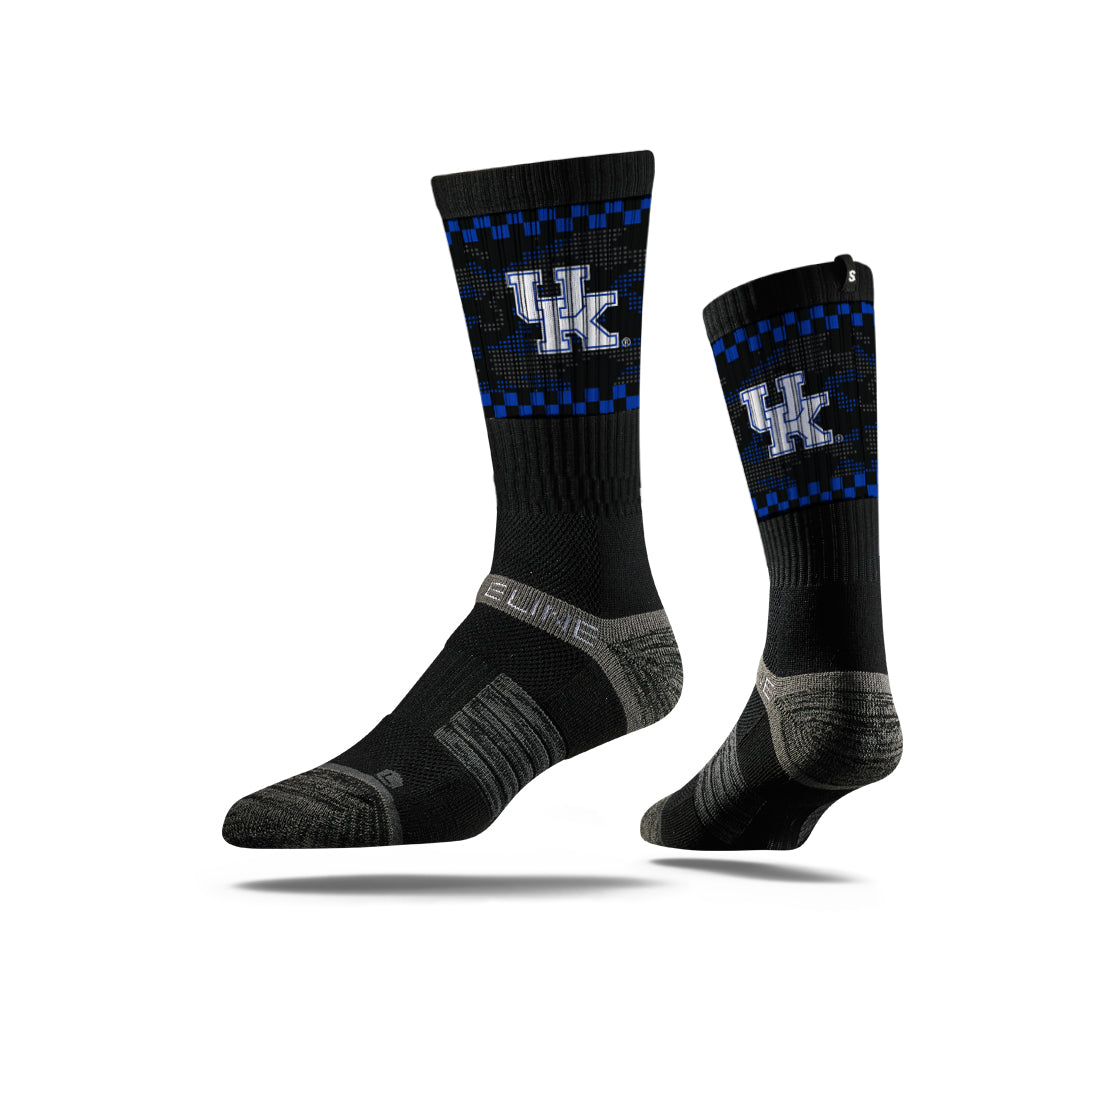 University of Kentucky Wildcats Black Socks